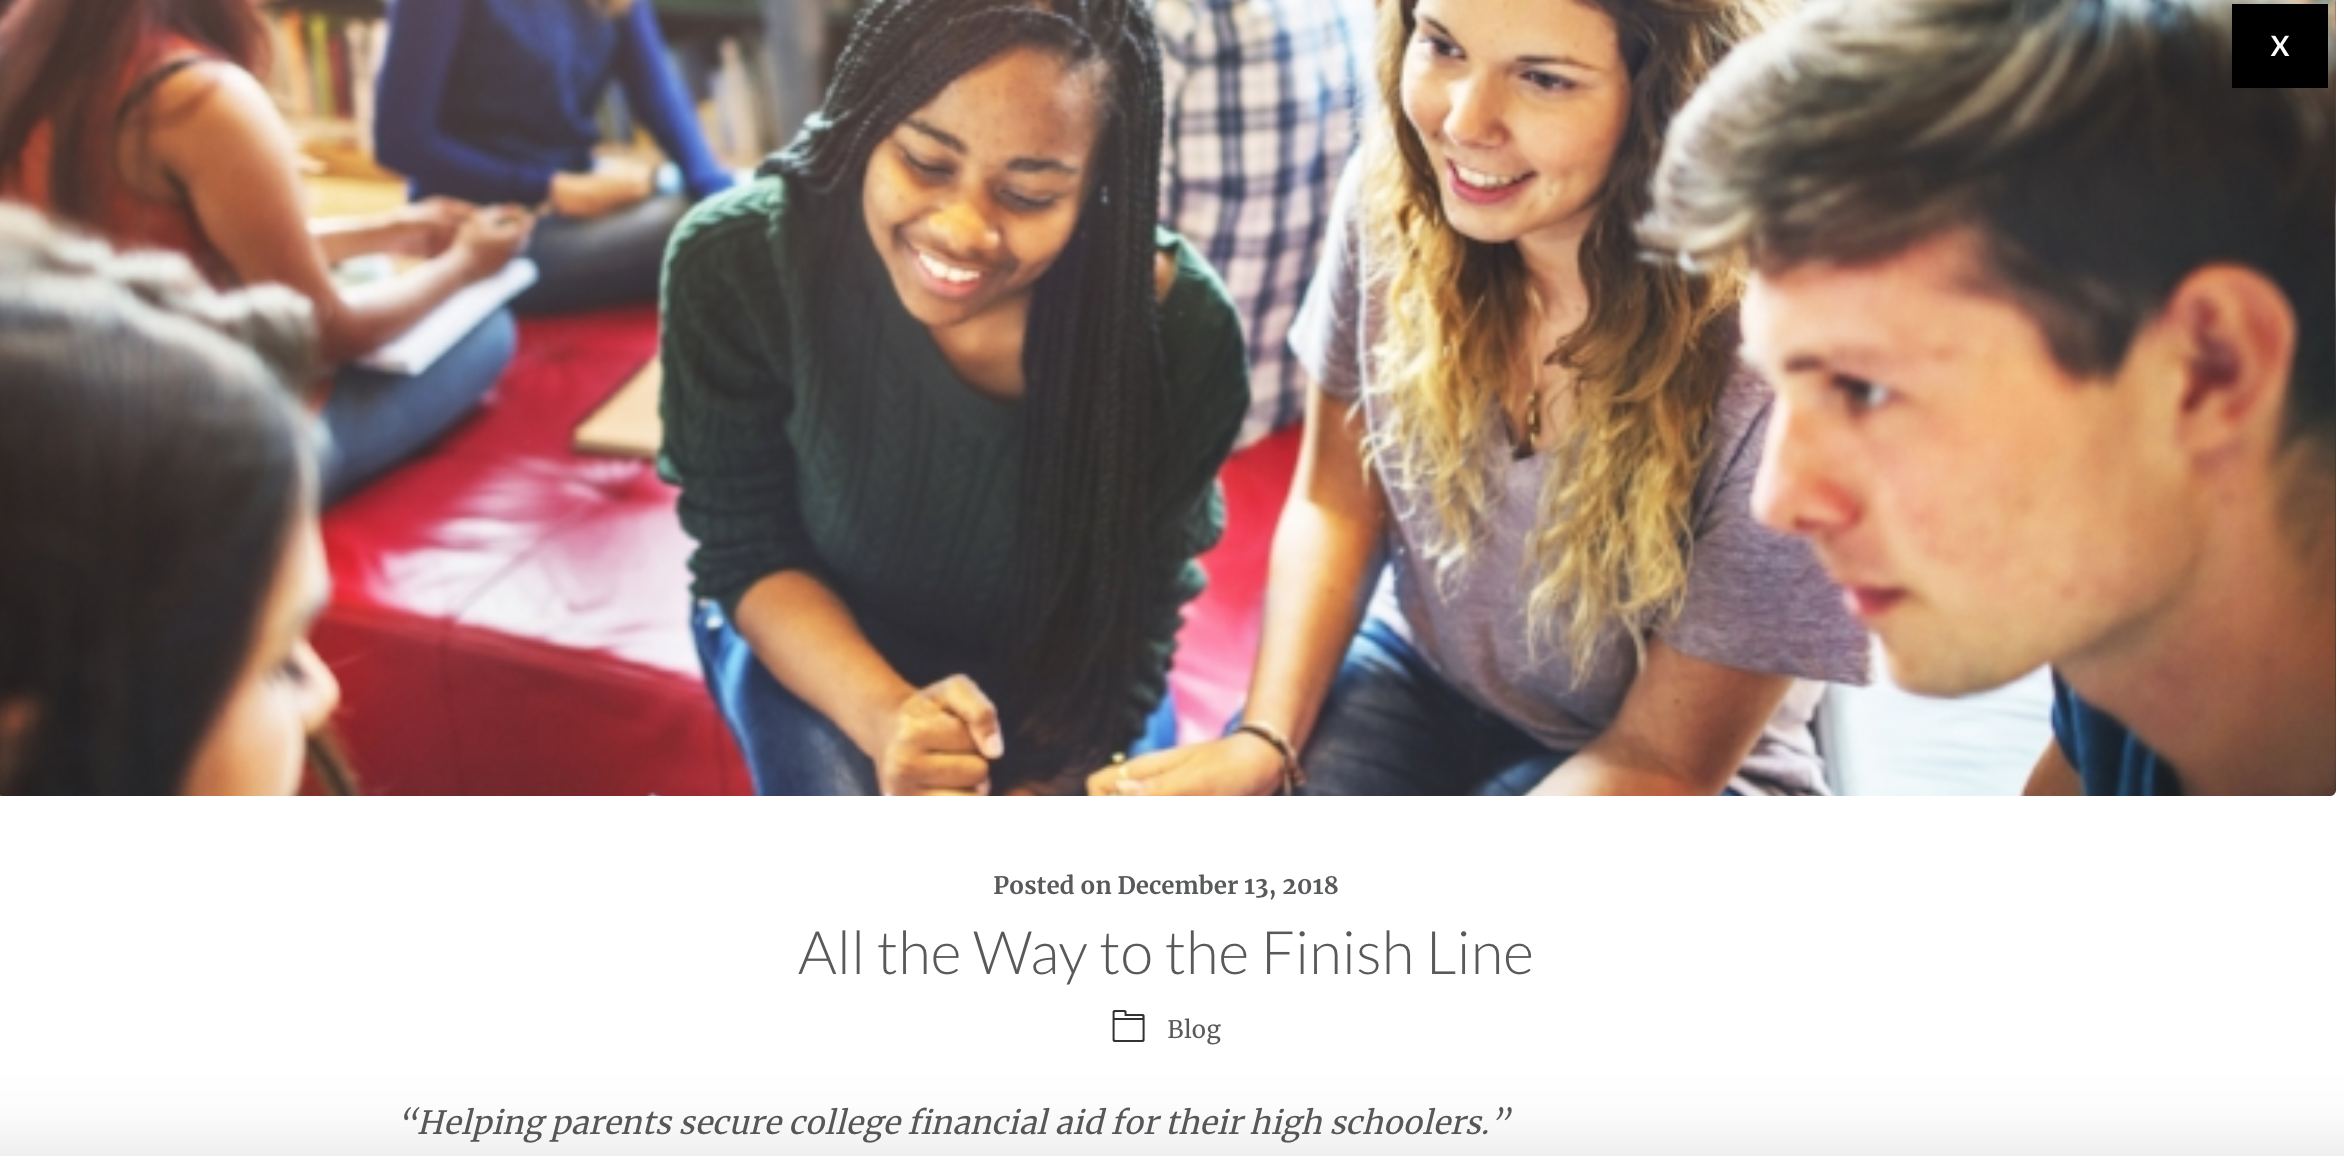 All the Way to the Finish Line - https://www.wisecounsel-inc.com/insights/blog/all-the-way-to-the-finish-line/